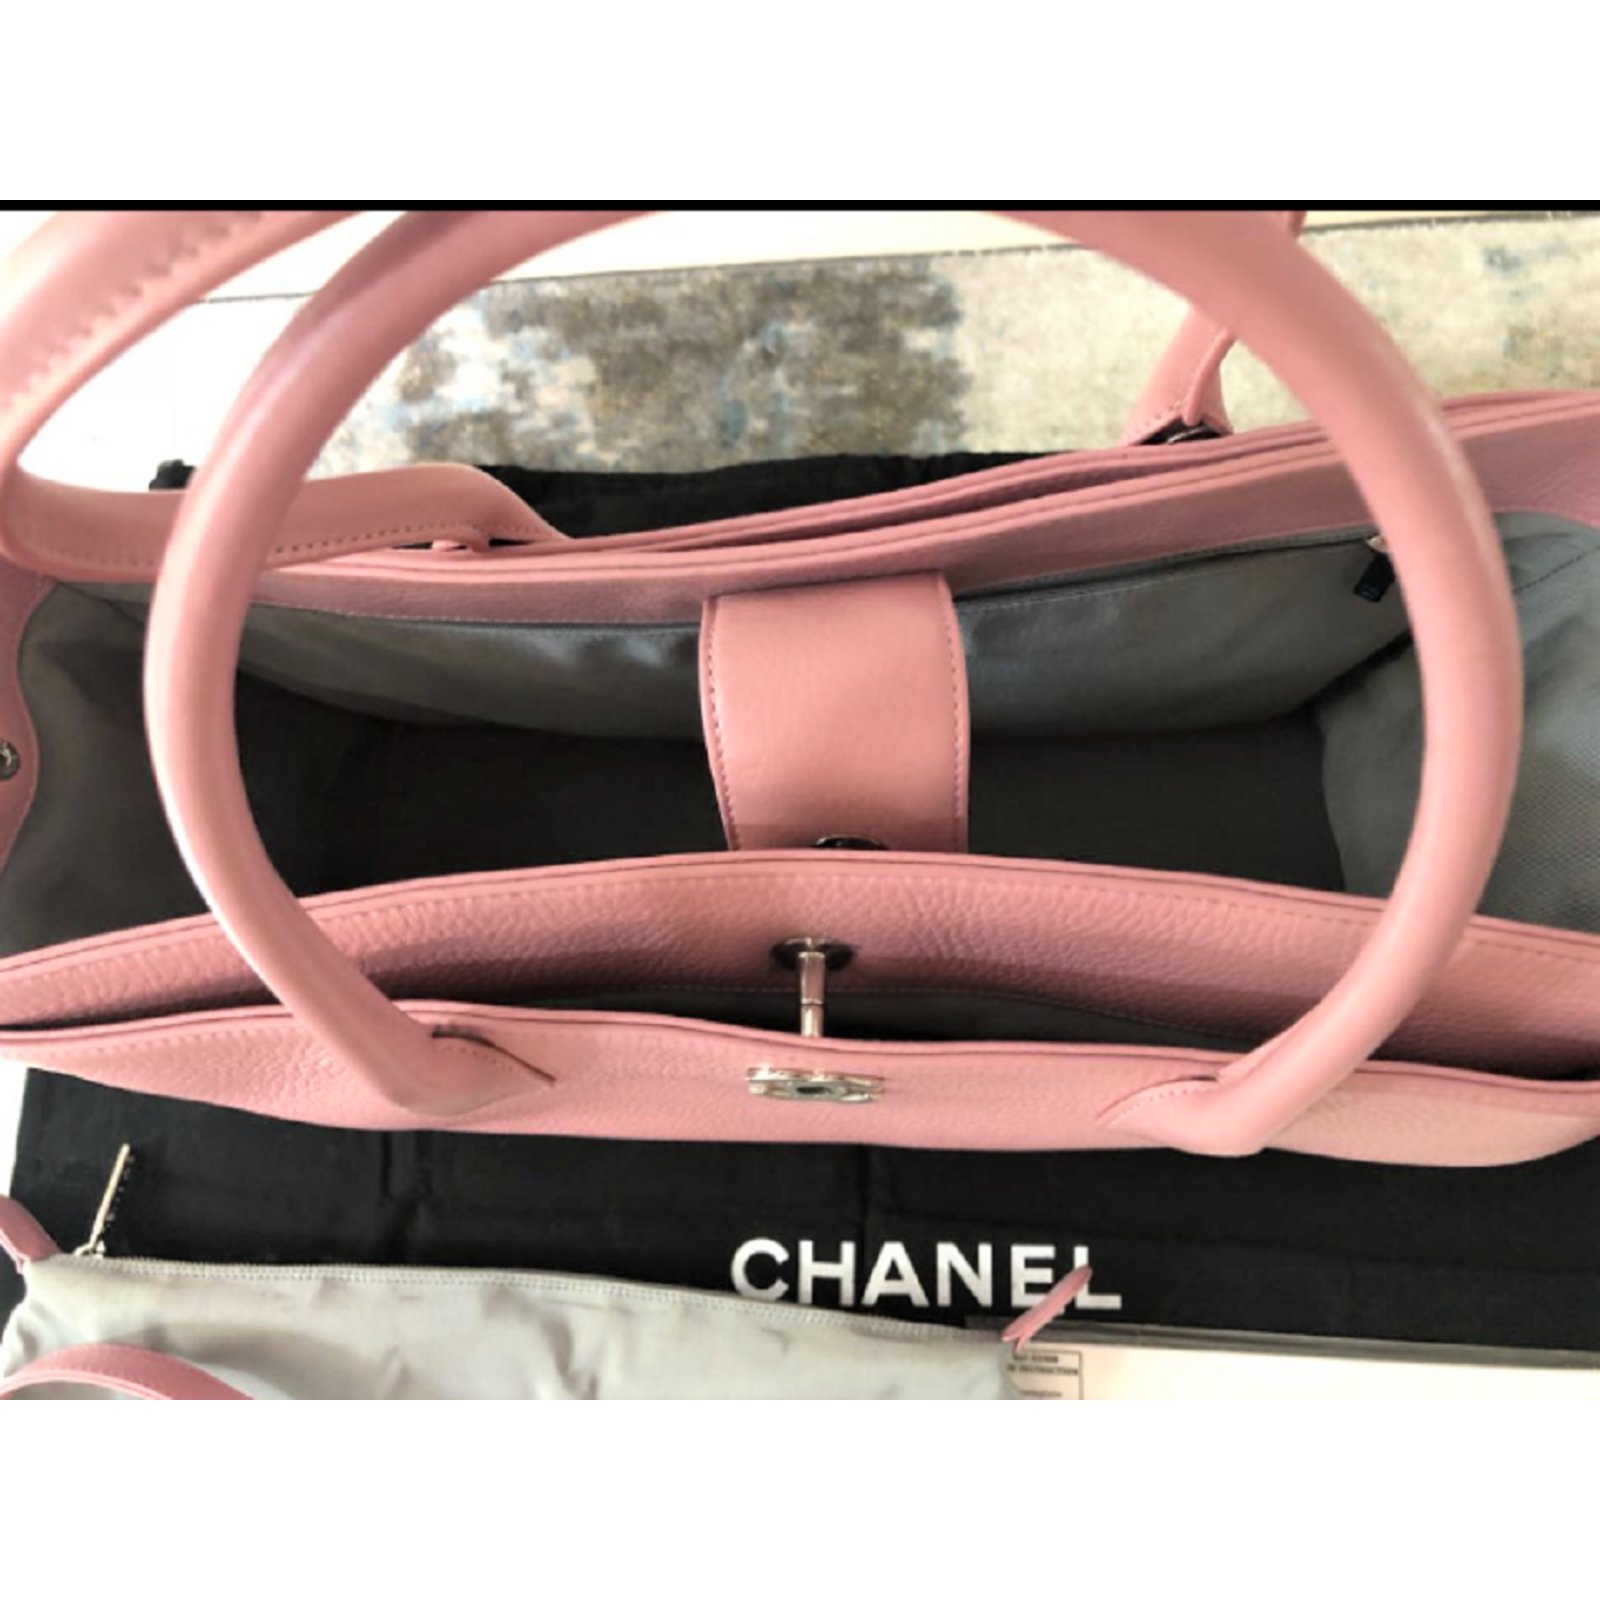 Chanel Pink Executive Cerf Tote Handbags Leather Pink Ref 88976 Joli Closet